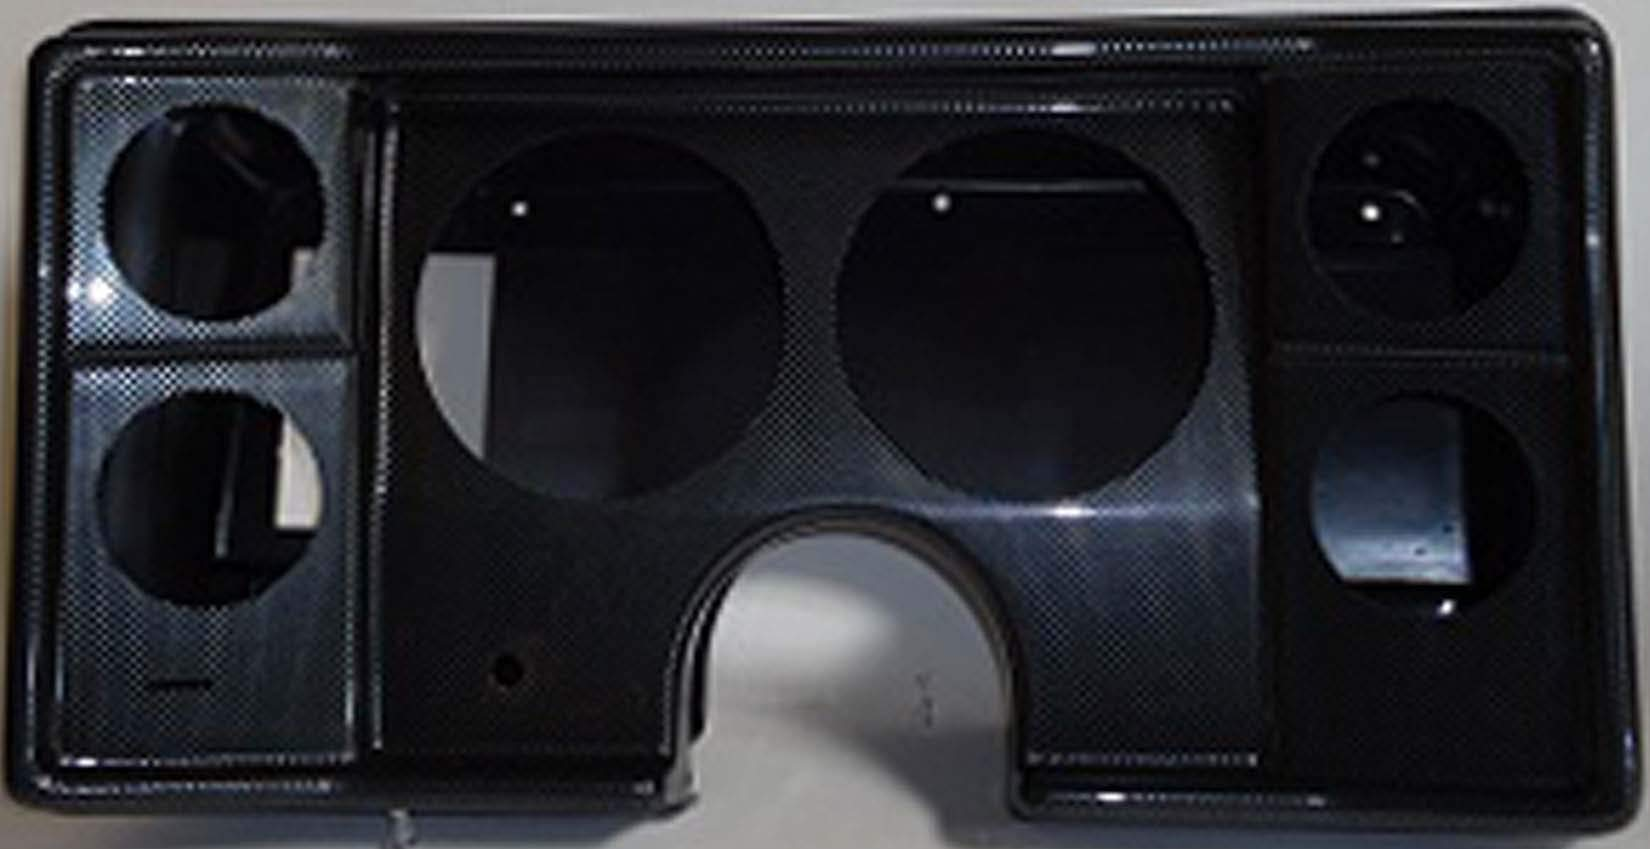 78-81 Chevy G Body Carbon Dash Carrier Panel for 5'', 2-5/8'' Gauges